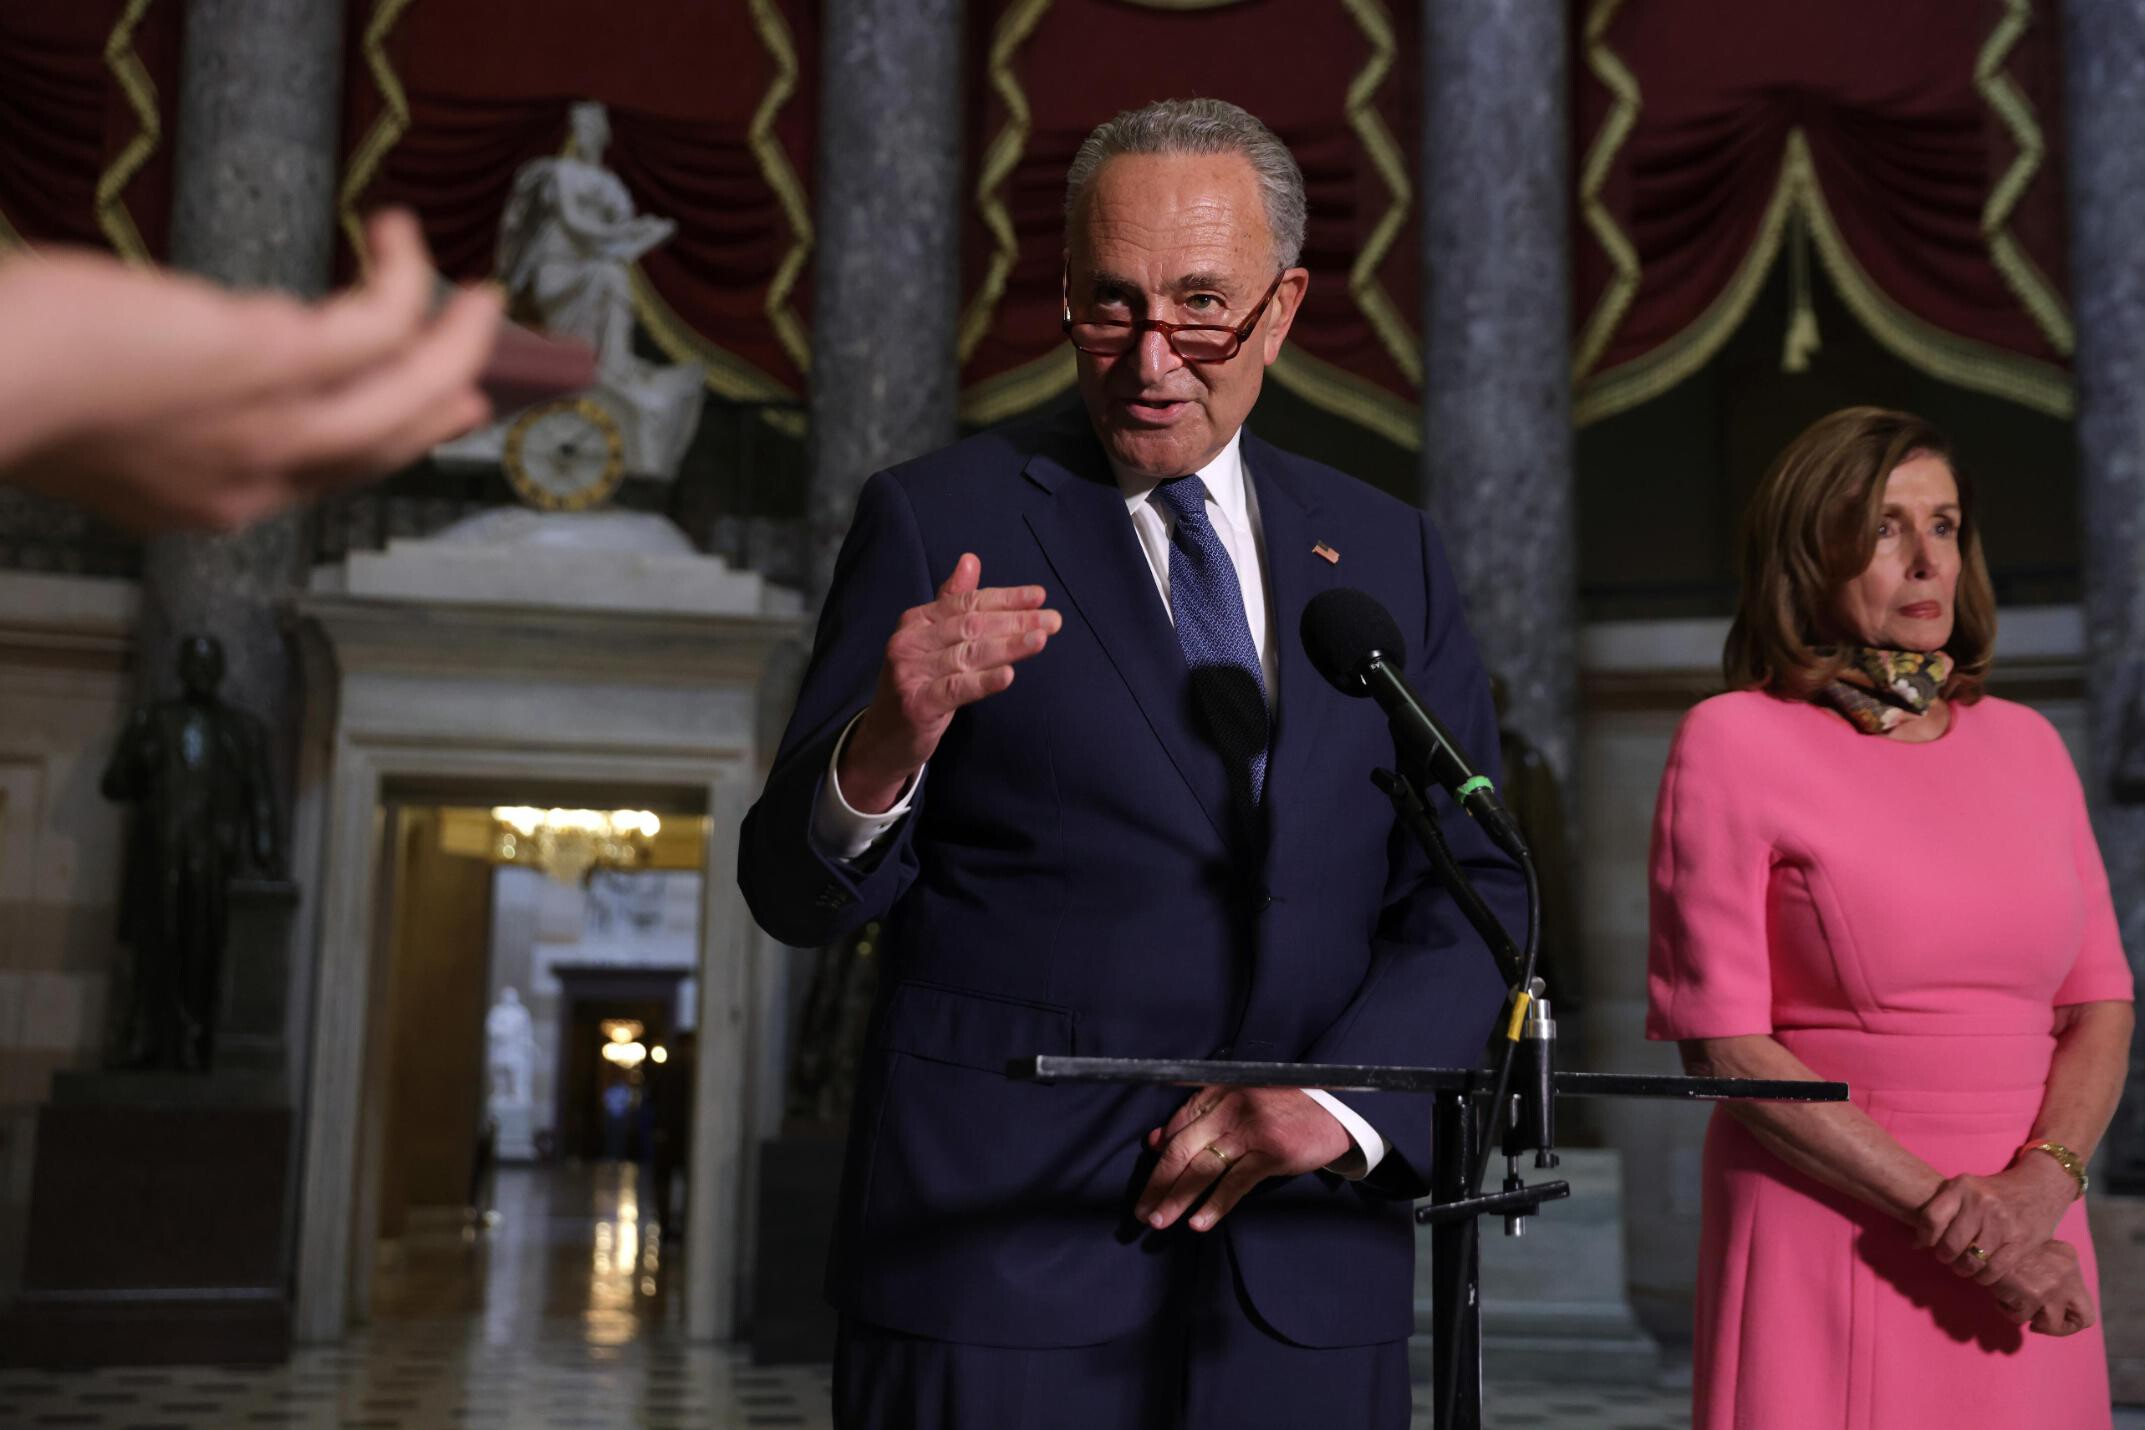 Schumer and Pelosi face leadership test as infrastructure push kicks into high gear